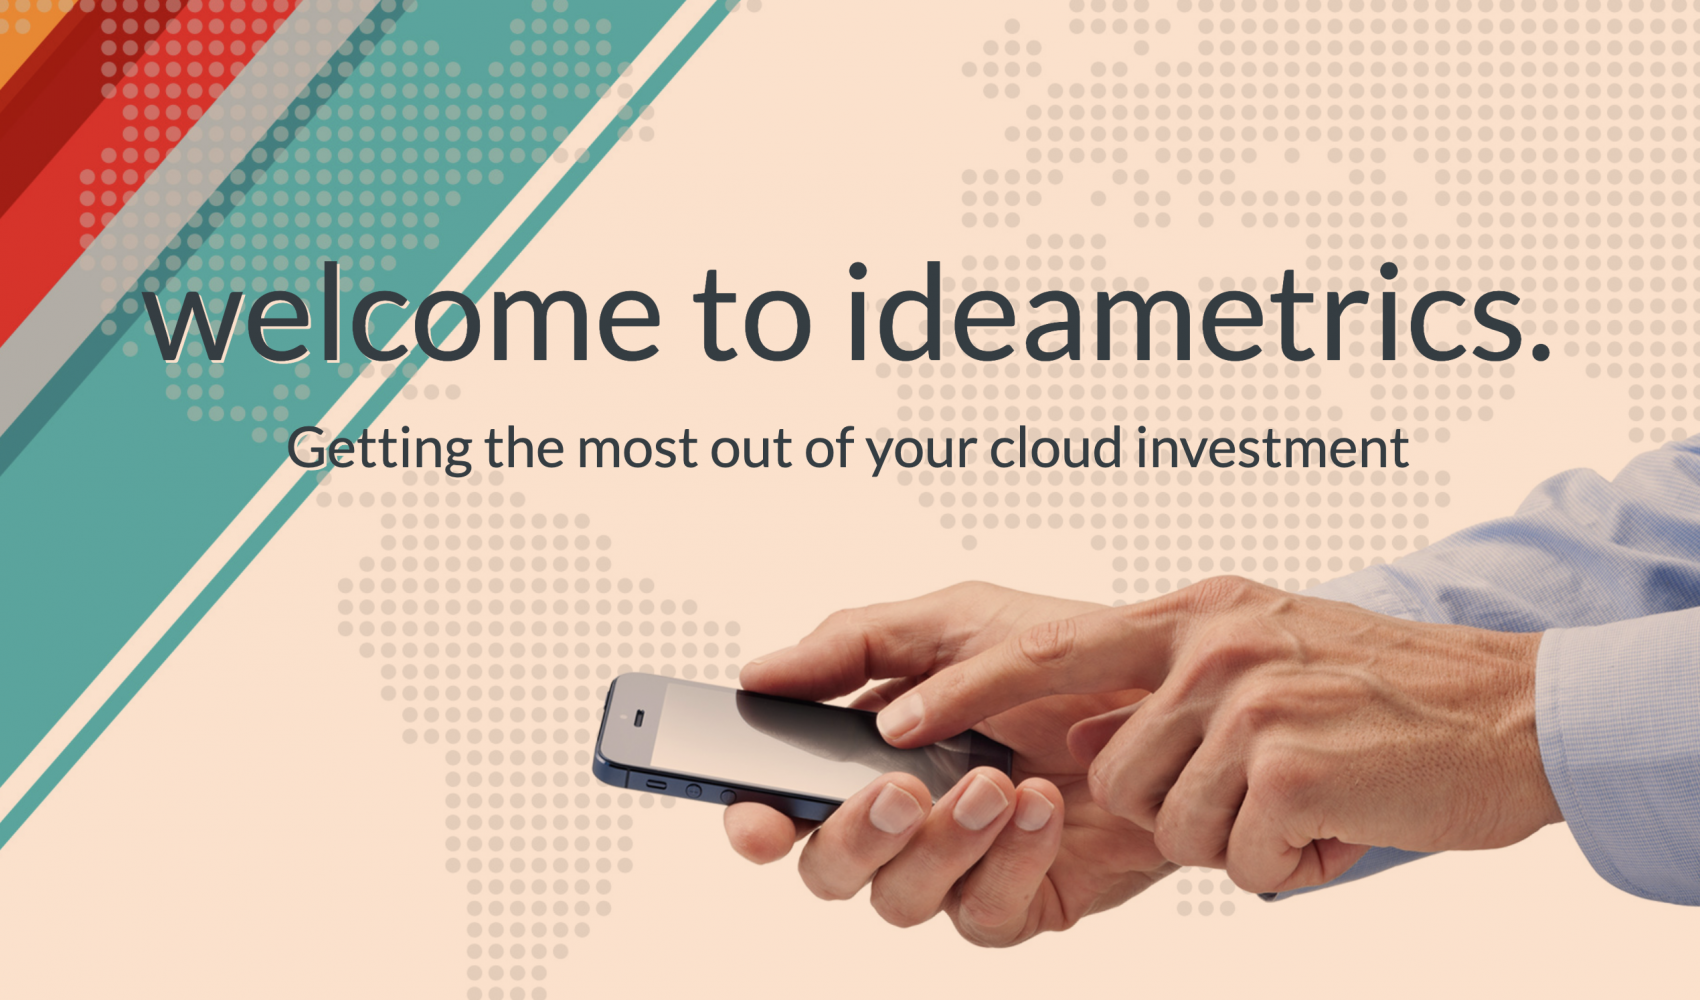 welcome to ideametrics